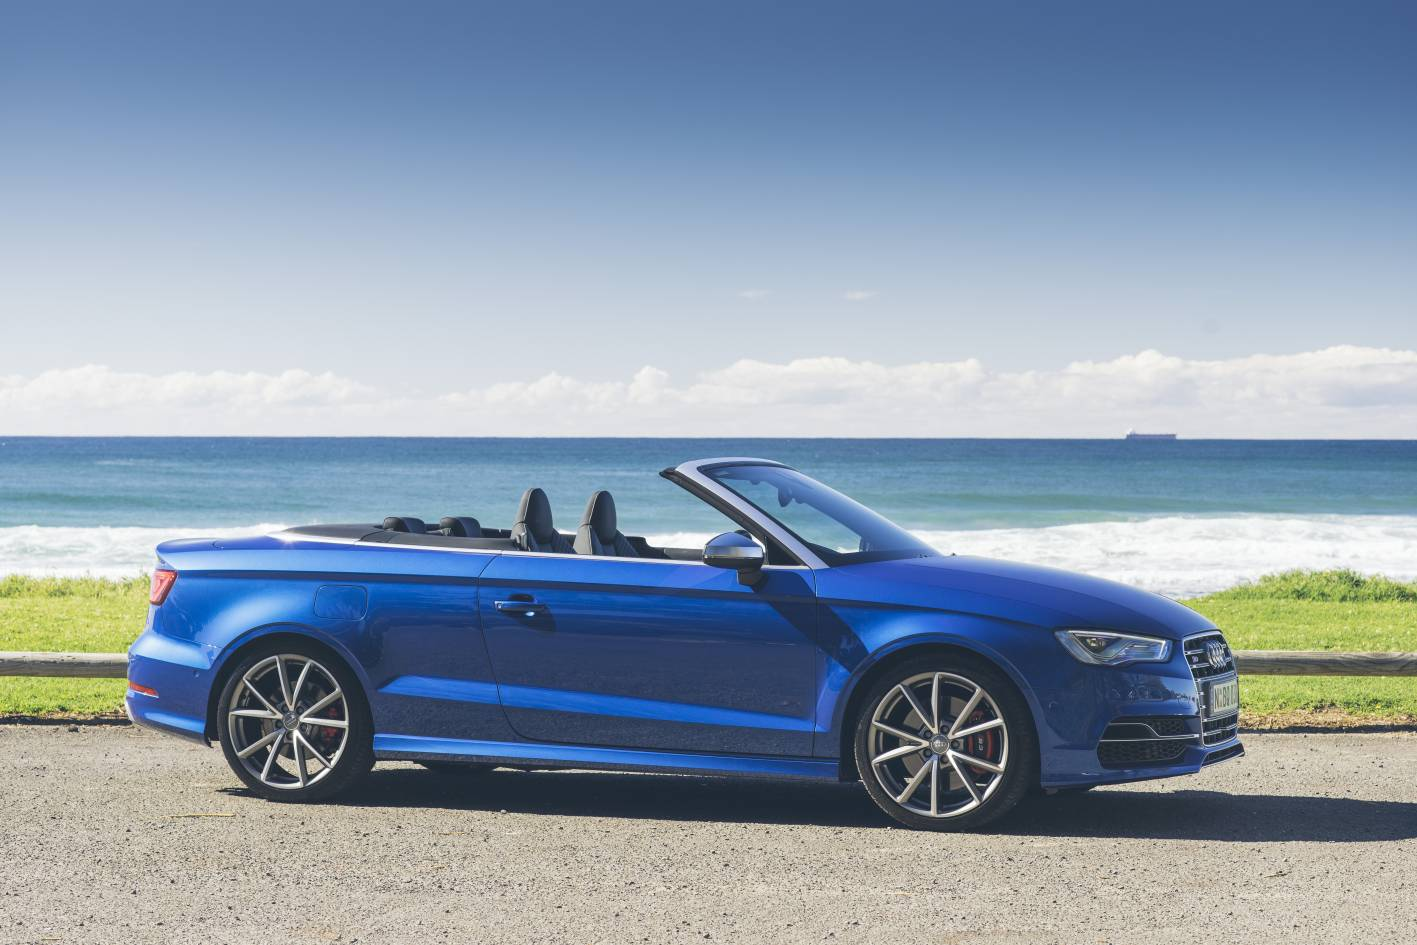 audi s3 review 2015 audi s3 cabriolet. Black Bedroom Furniture Sets. Home Design Ideas